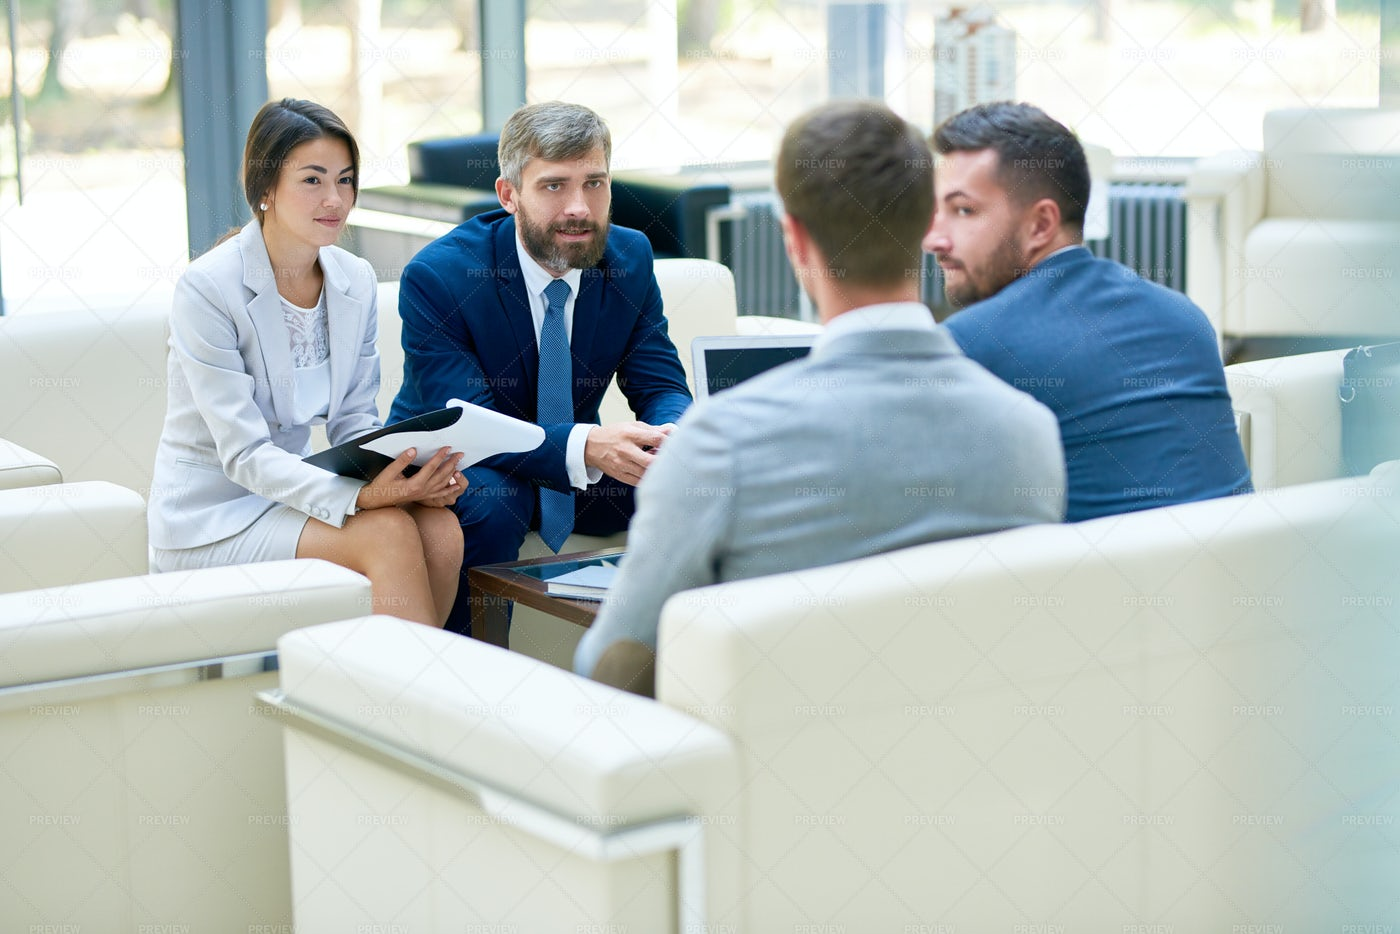 Negotiation Meeting In Office: Stock Photos